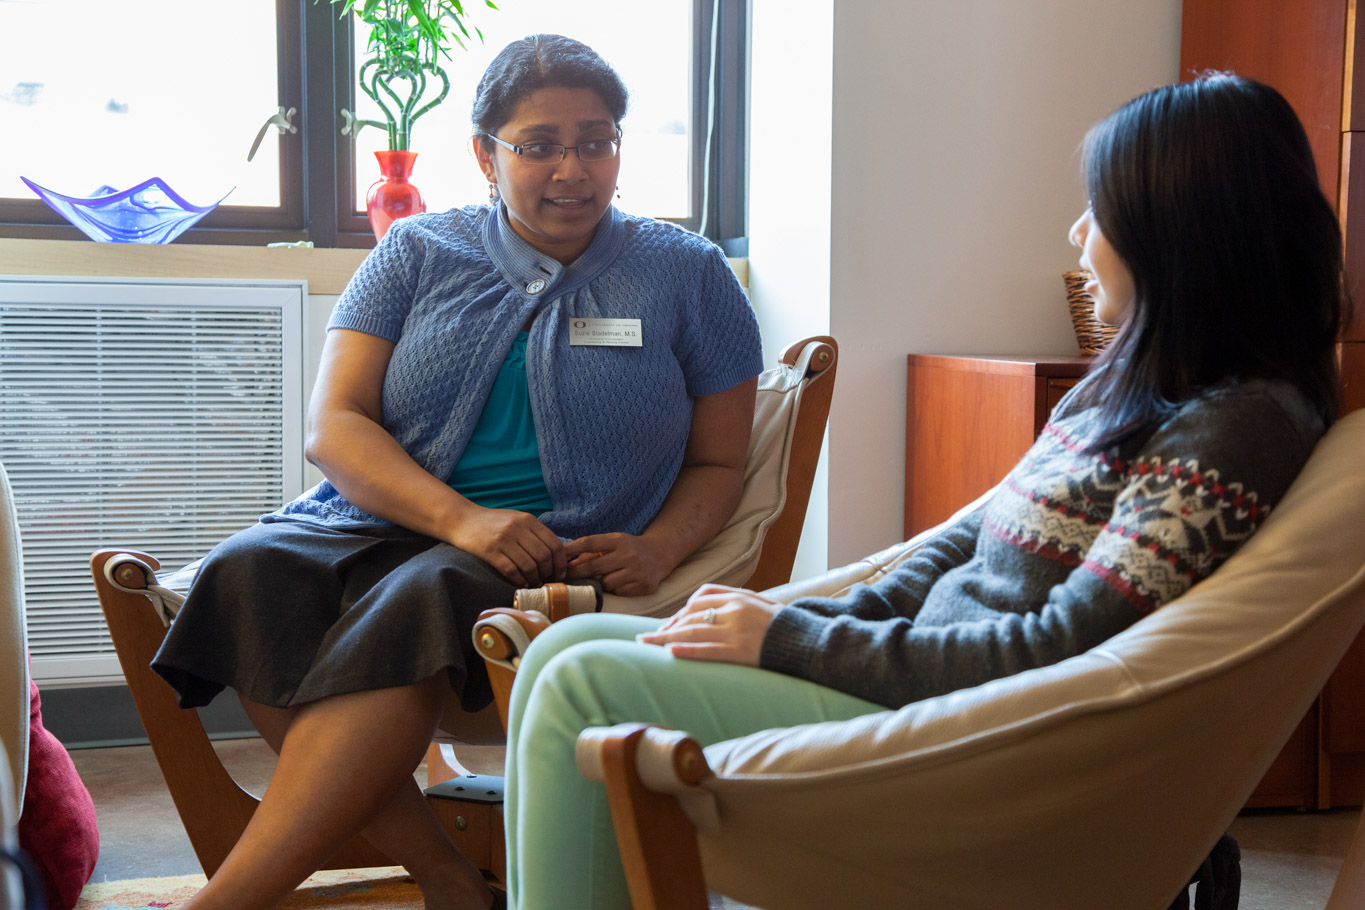 A student participates in a counseling session